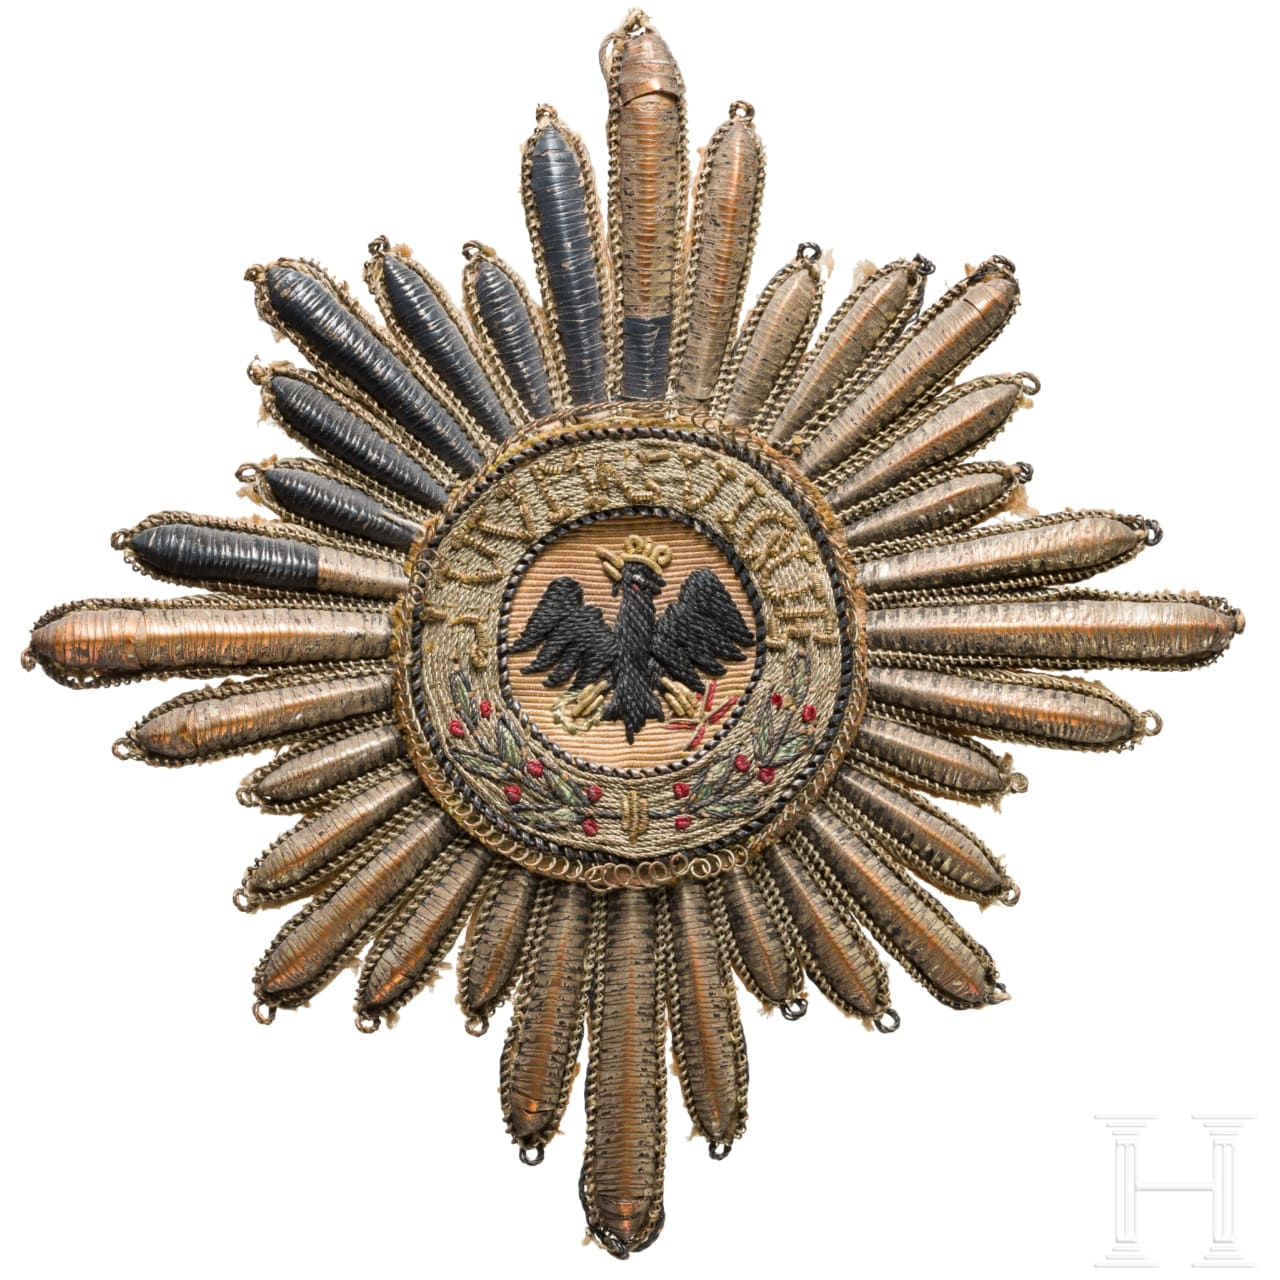 High order of the Black Eagle - a star in embroidered execution